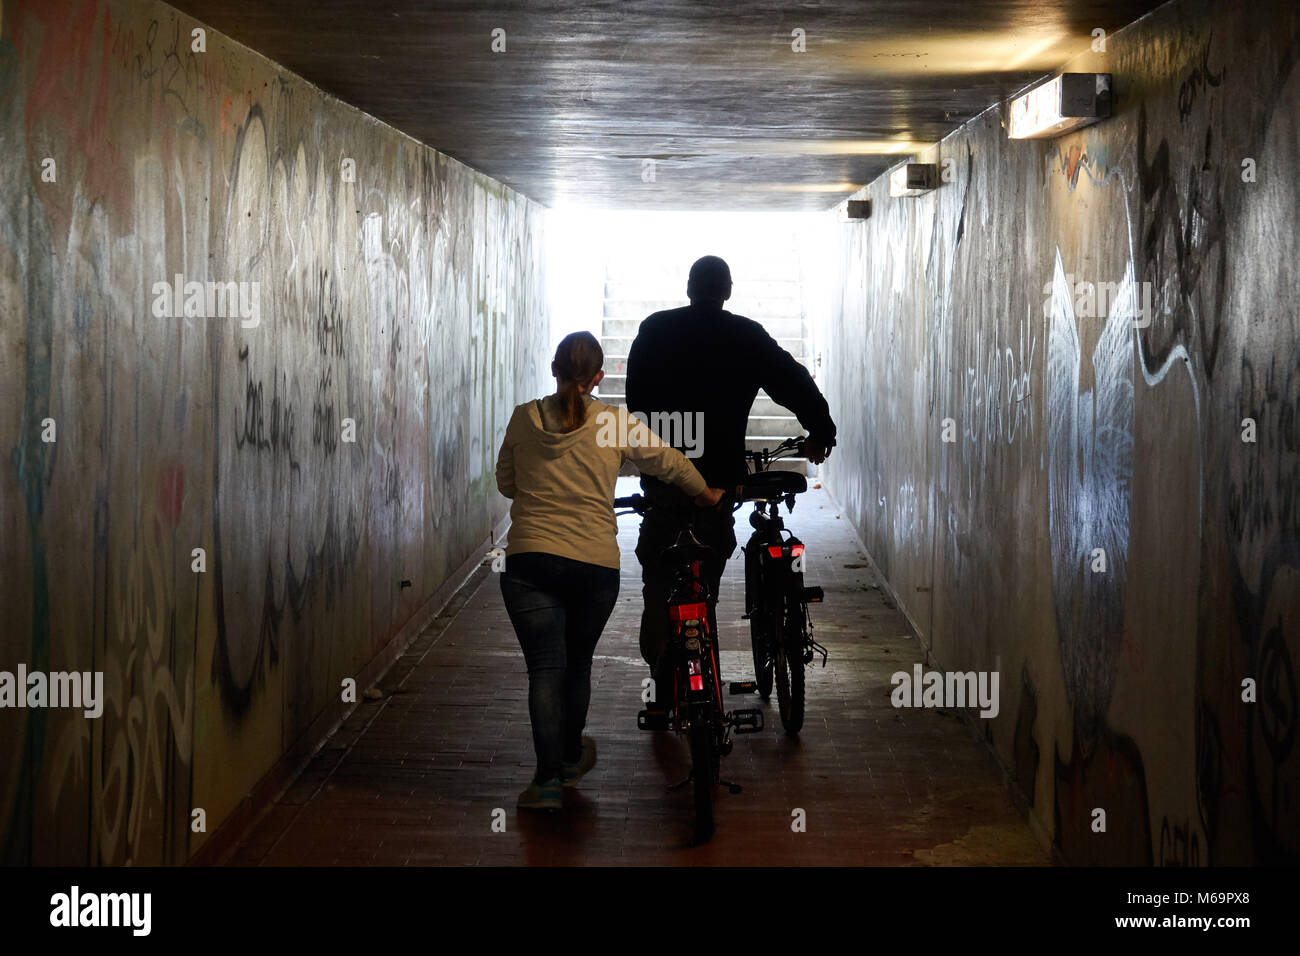 A man and a woman with bicycles walk along the underground passage. - Stock Image